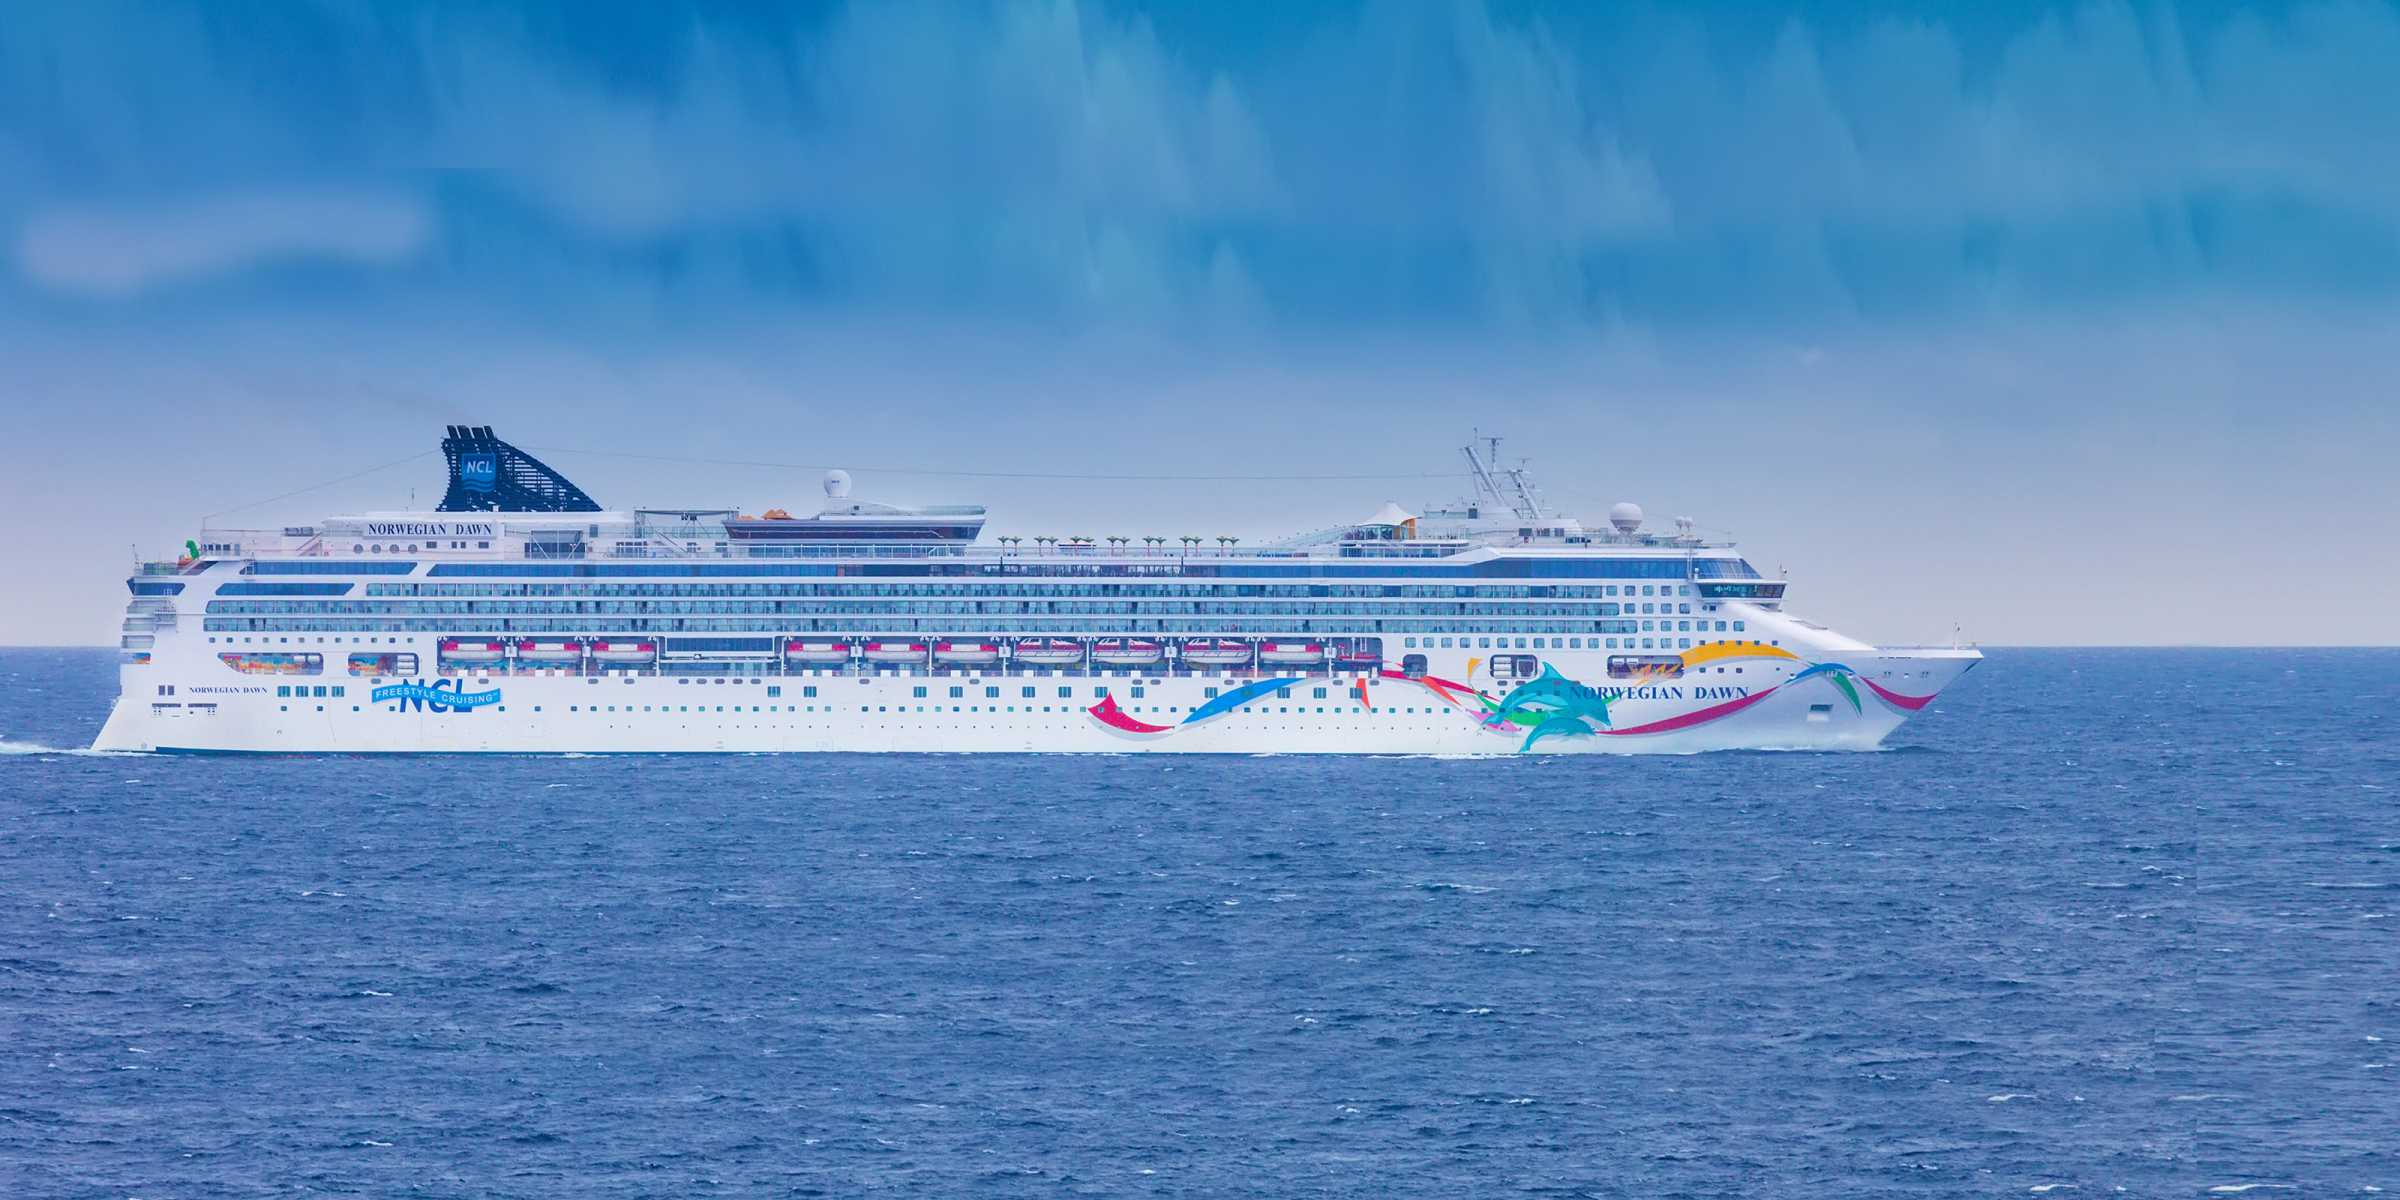 Norwegian Jewel La Cucina Menu Norwegian Cruises Cruise Deals On Norwegian Dawn